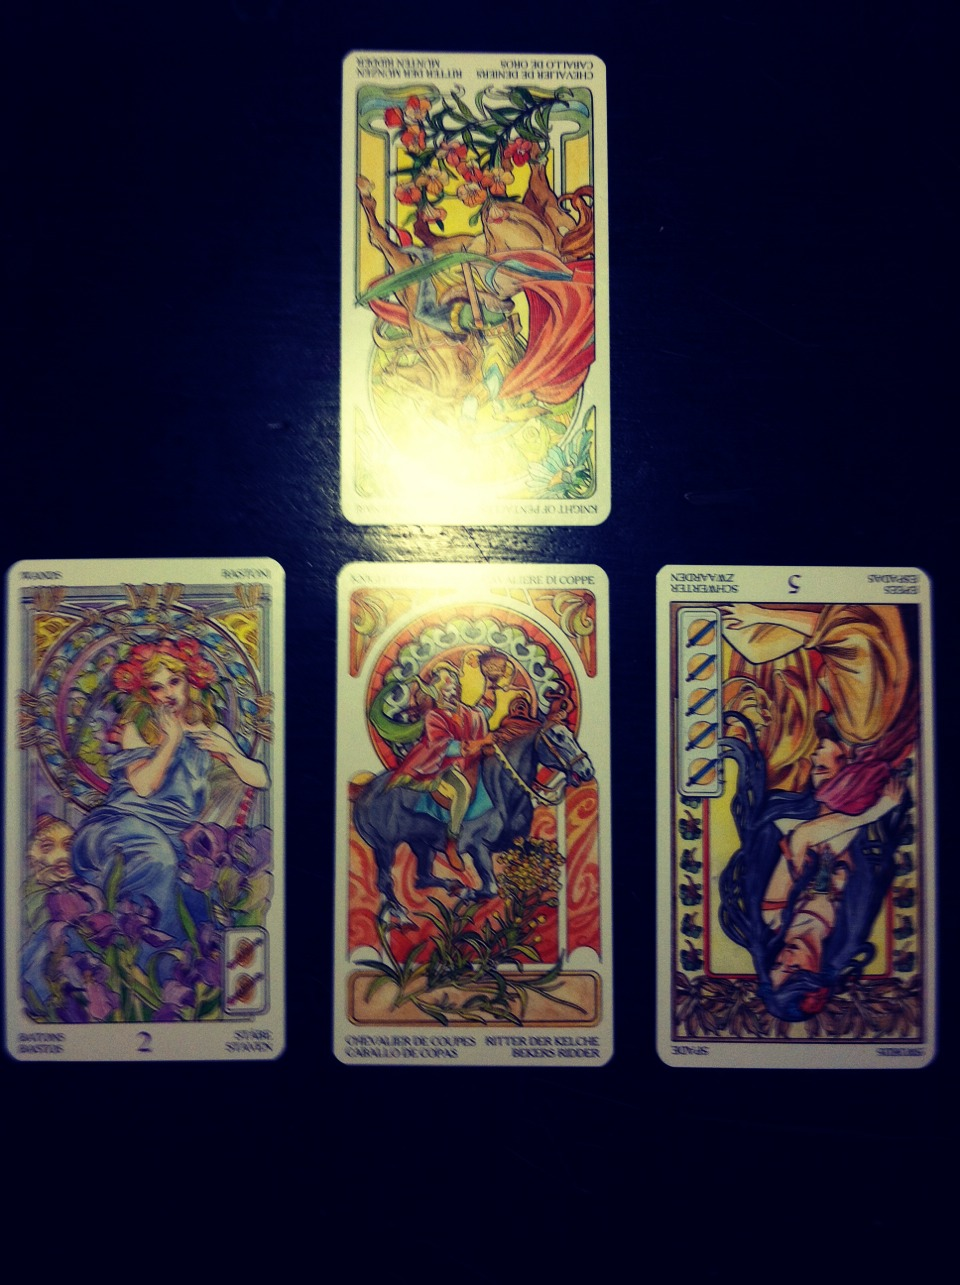 Within the suits it is up to you, the reader, to find your own meaning in the cards. The past influences the present, which is resolved by the future. Look at who you are reading for. Find what they are looking for in the cards.